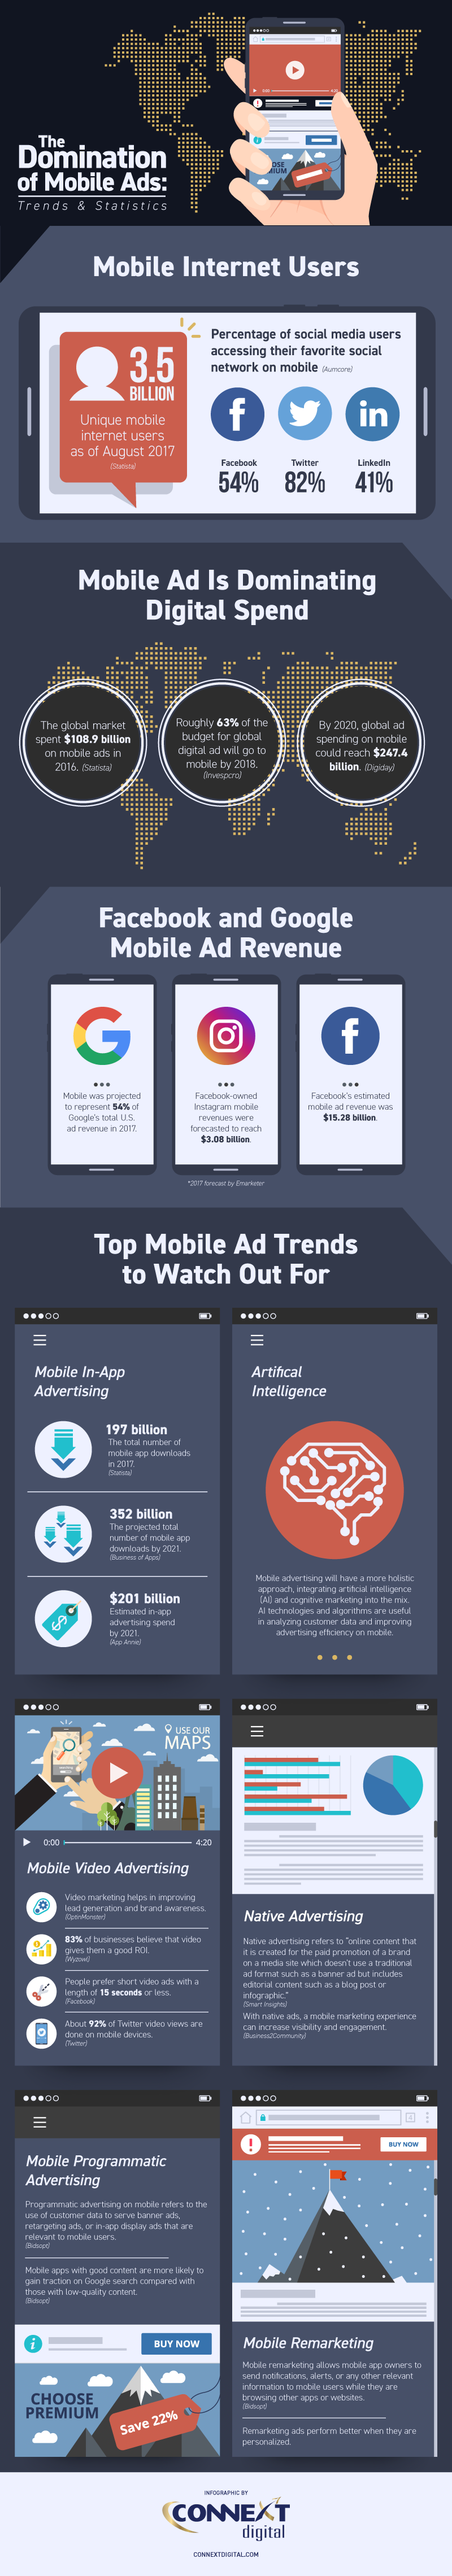 Infographic: Mobile Advertising